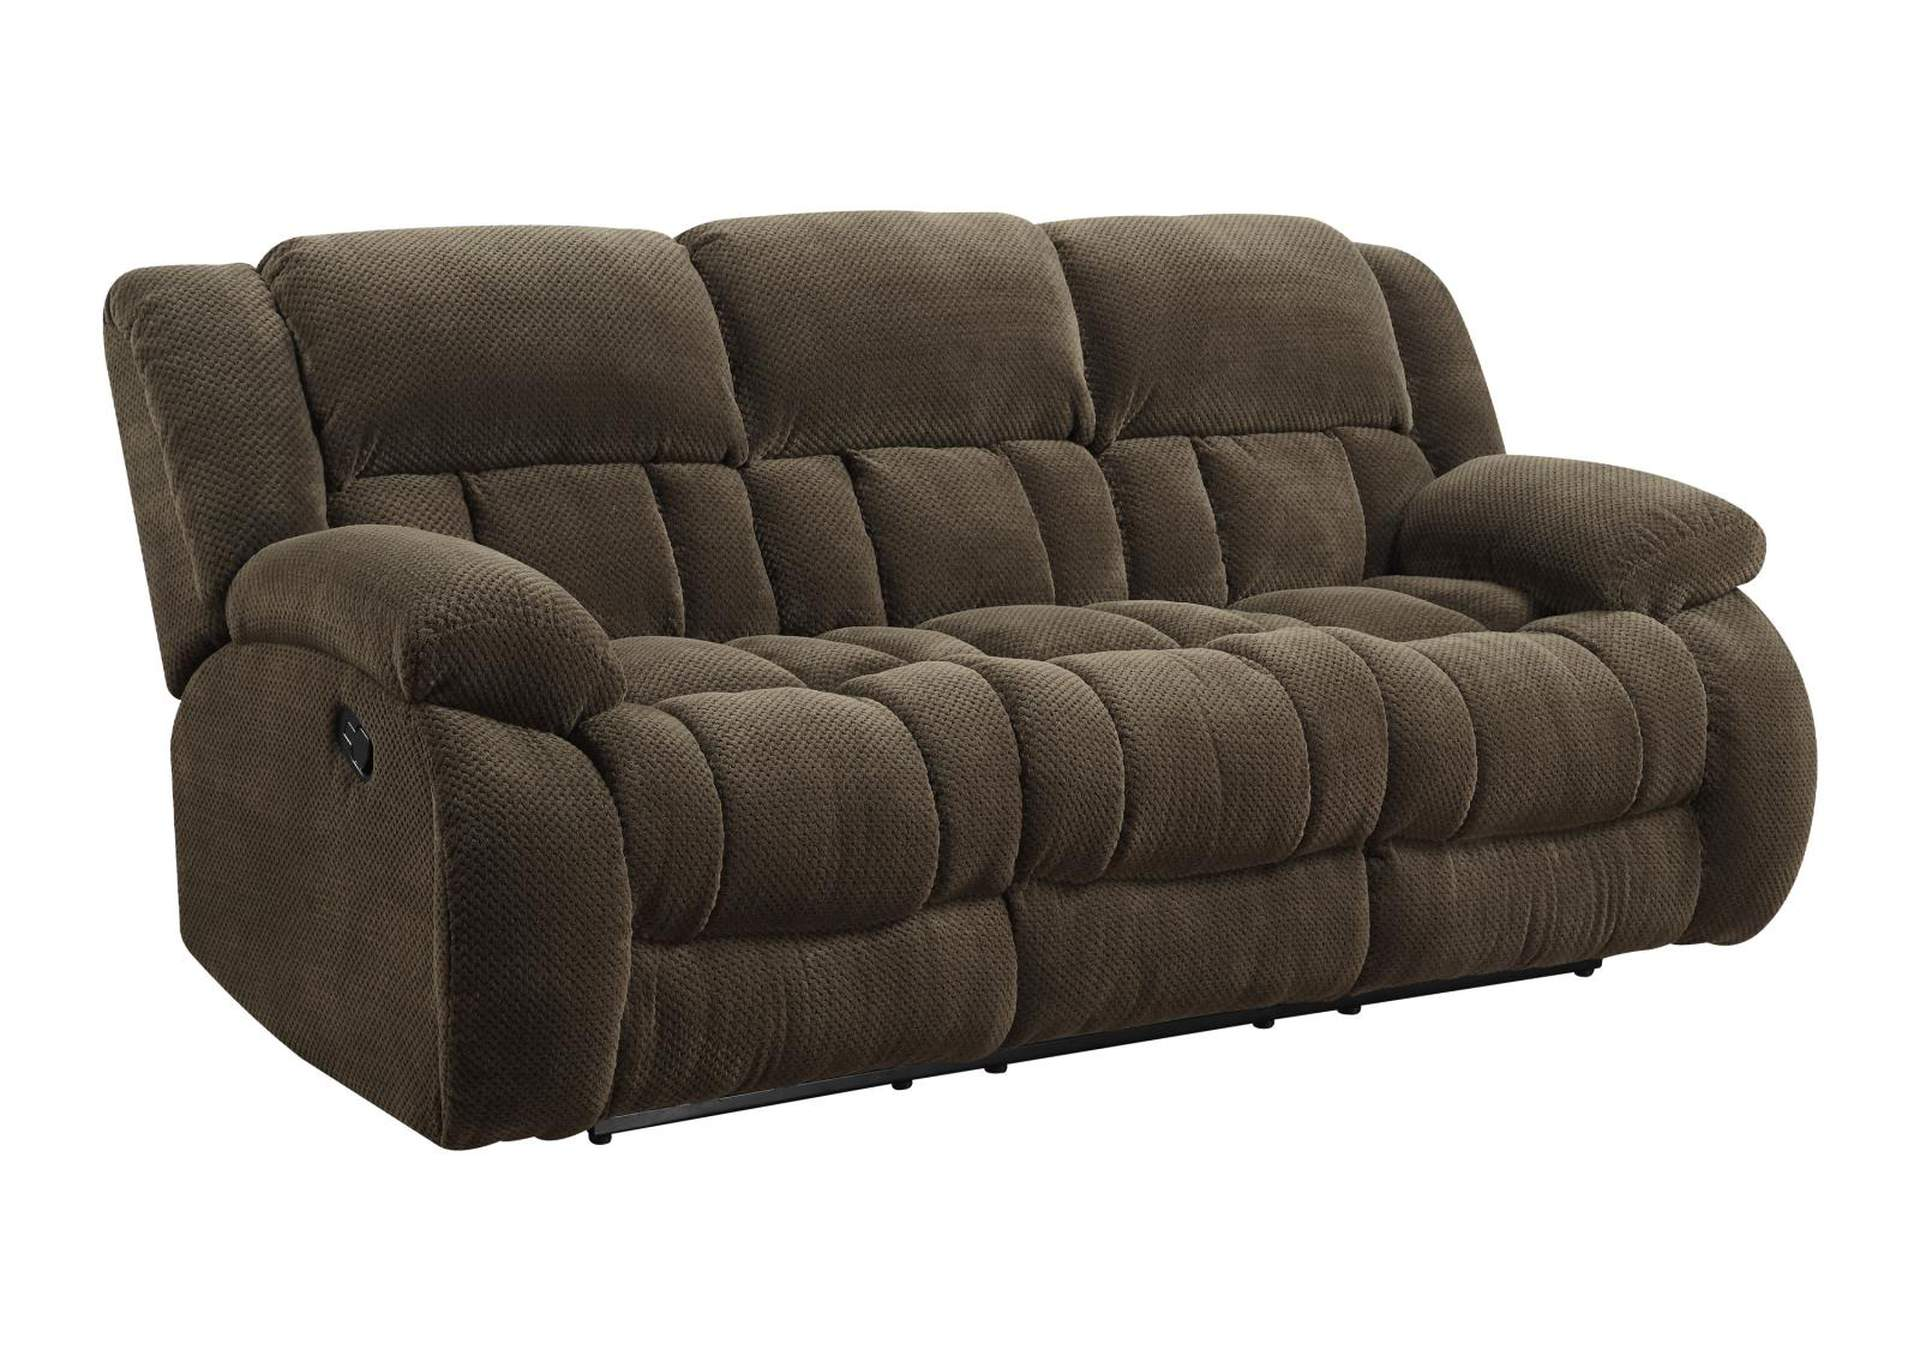 Birch Weissman Brown Reclining Sofa,Coaster Furniture